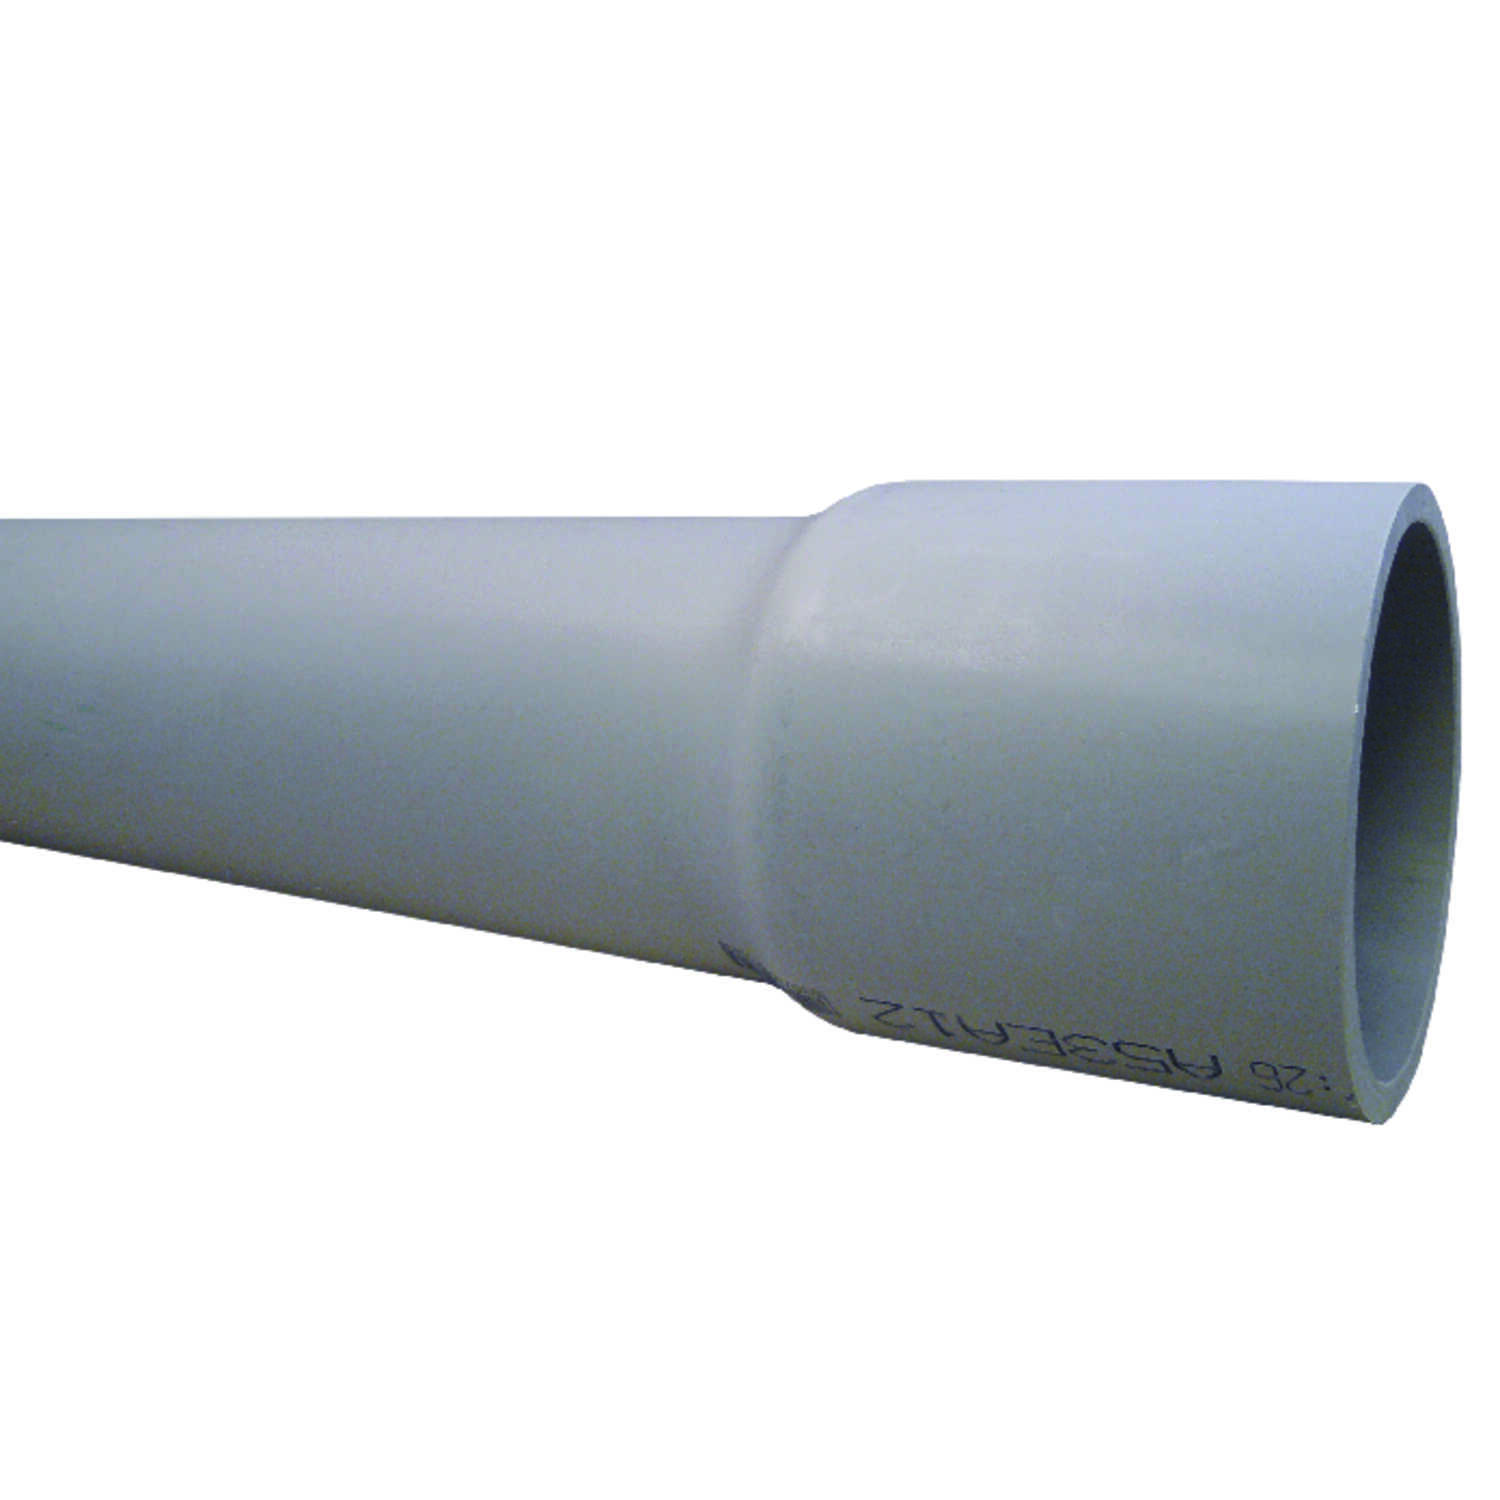 Cantex  2  Dia. x 10  L PVC  For Rigid Electrical Conduit